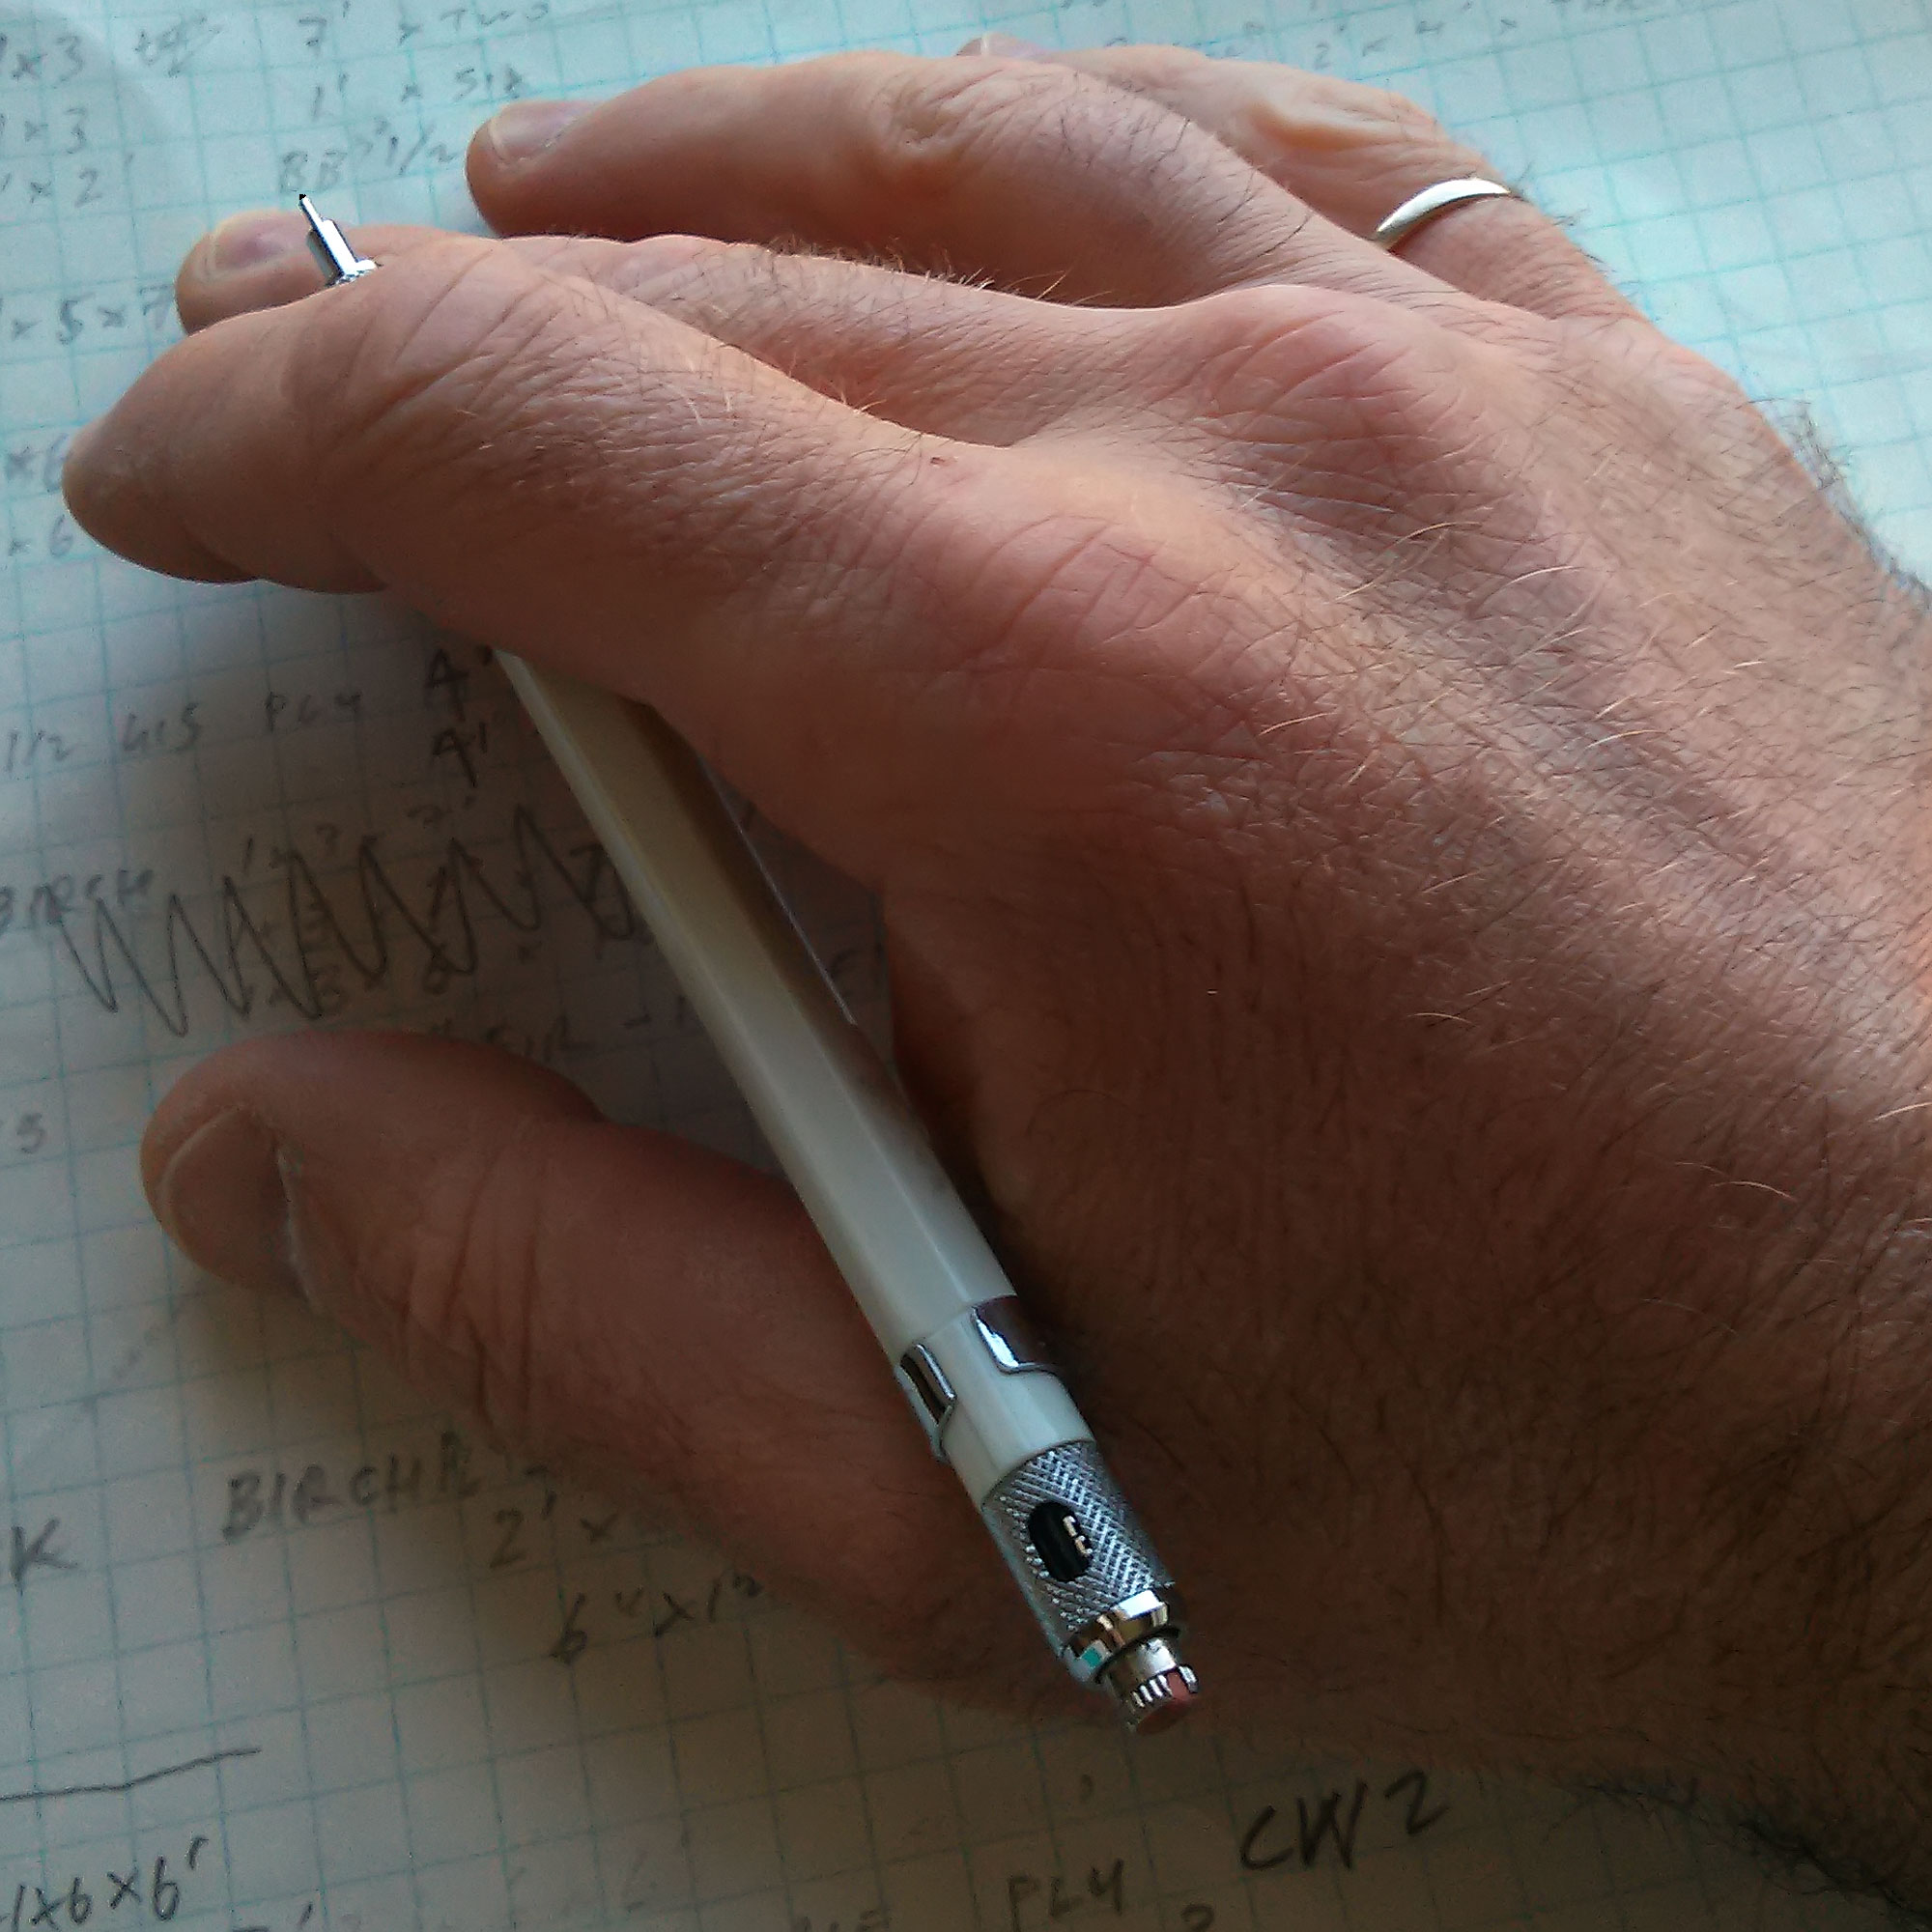 pencil-in-hand.jpg